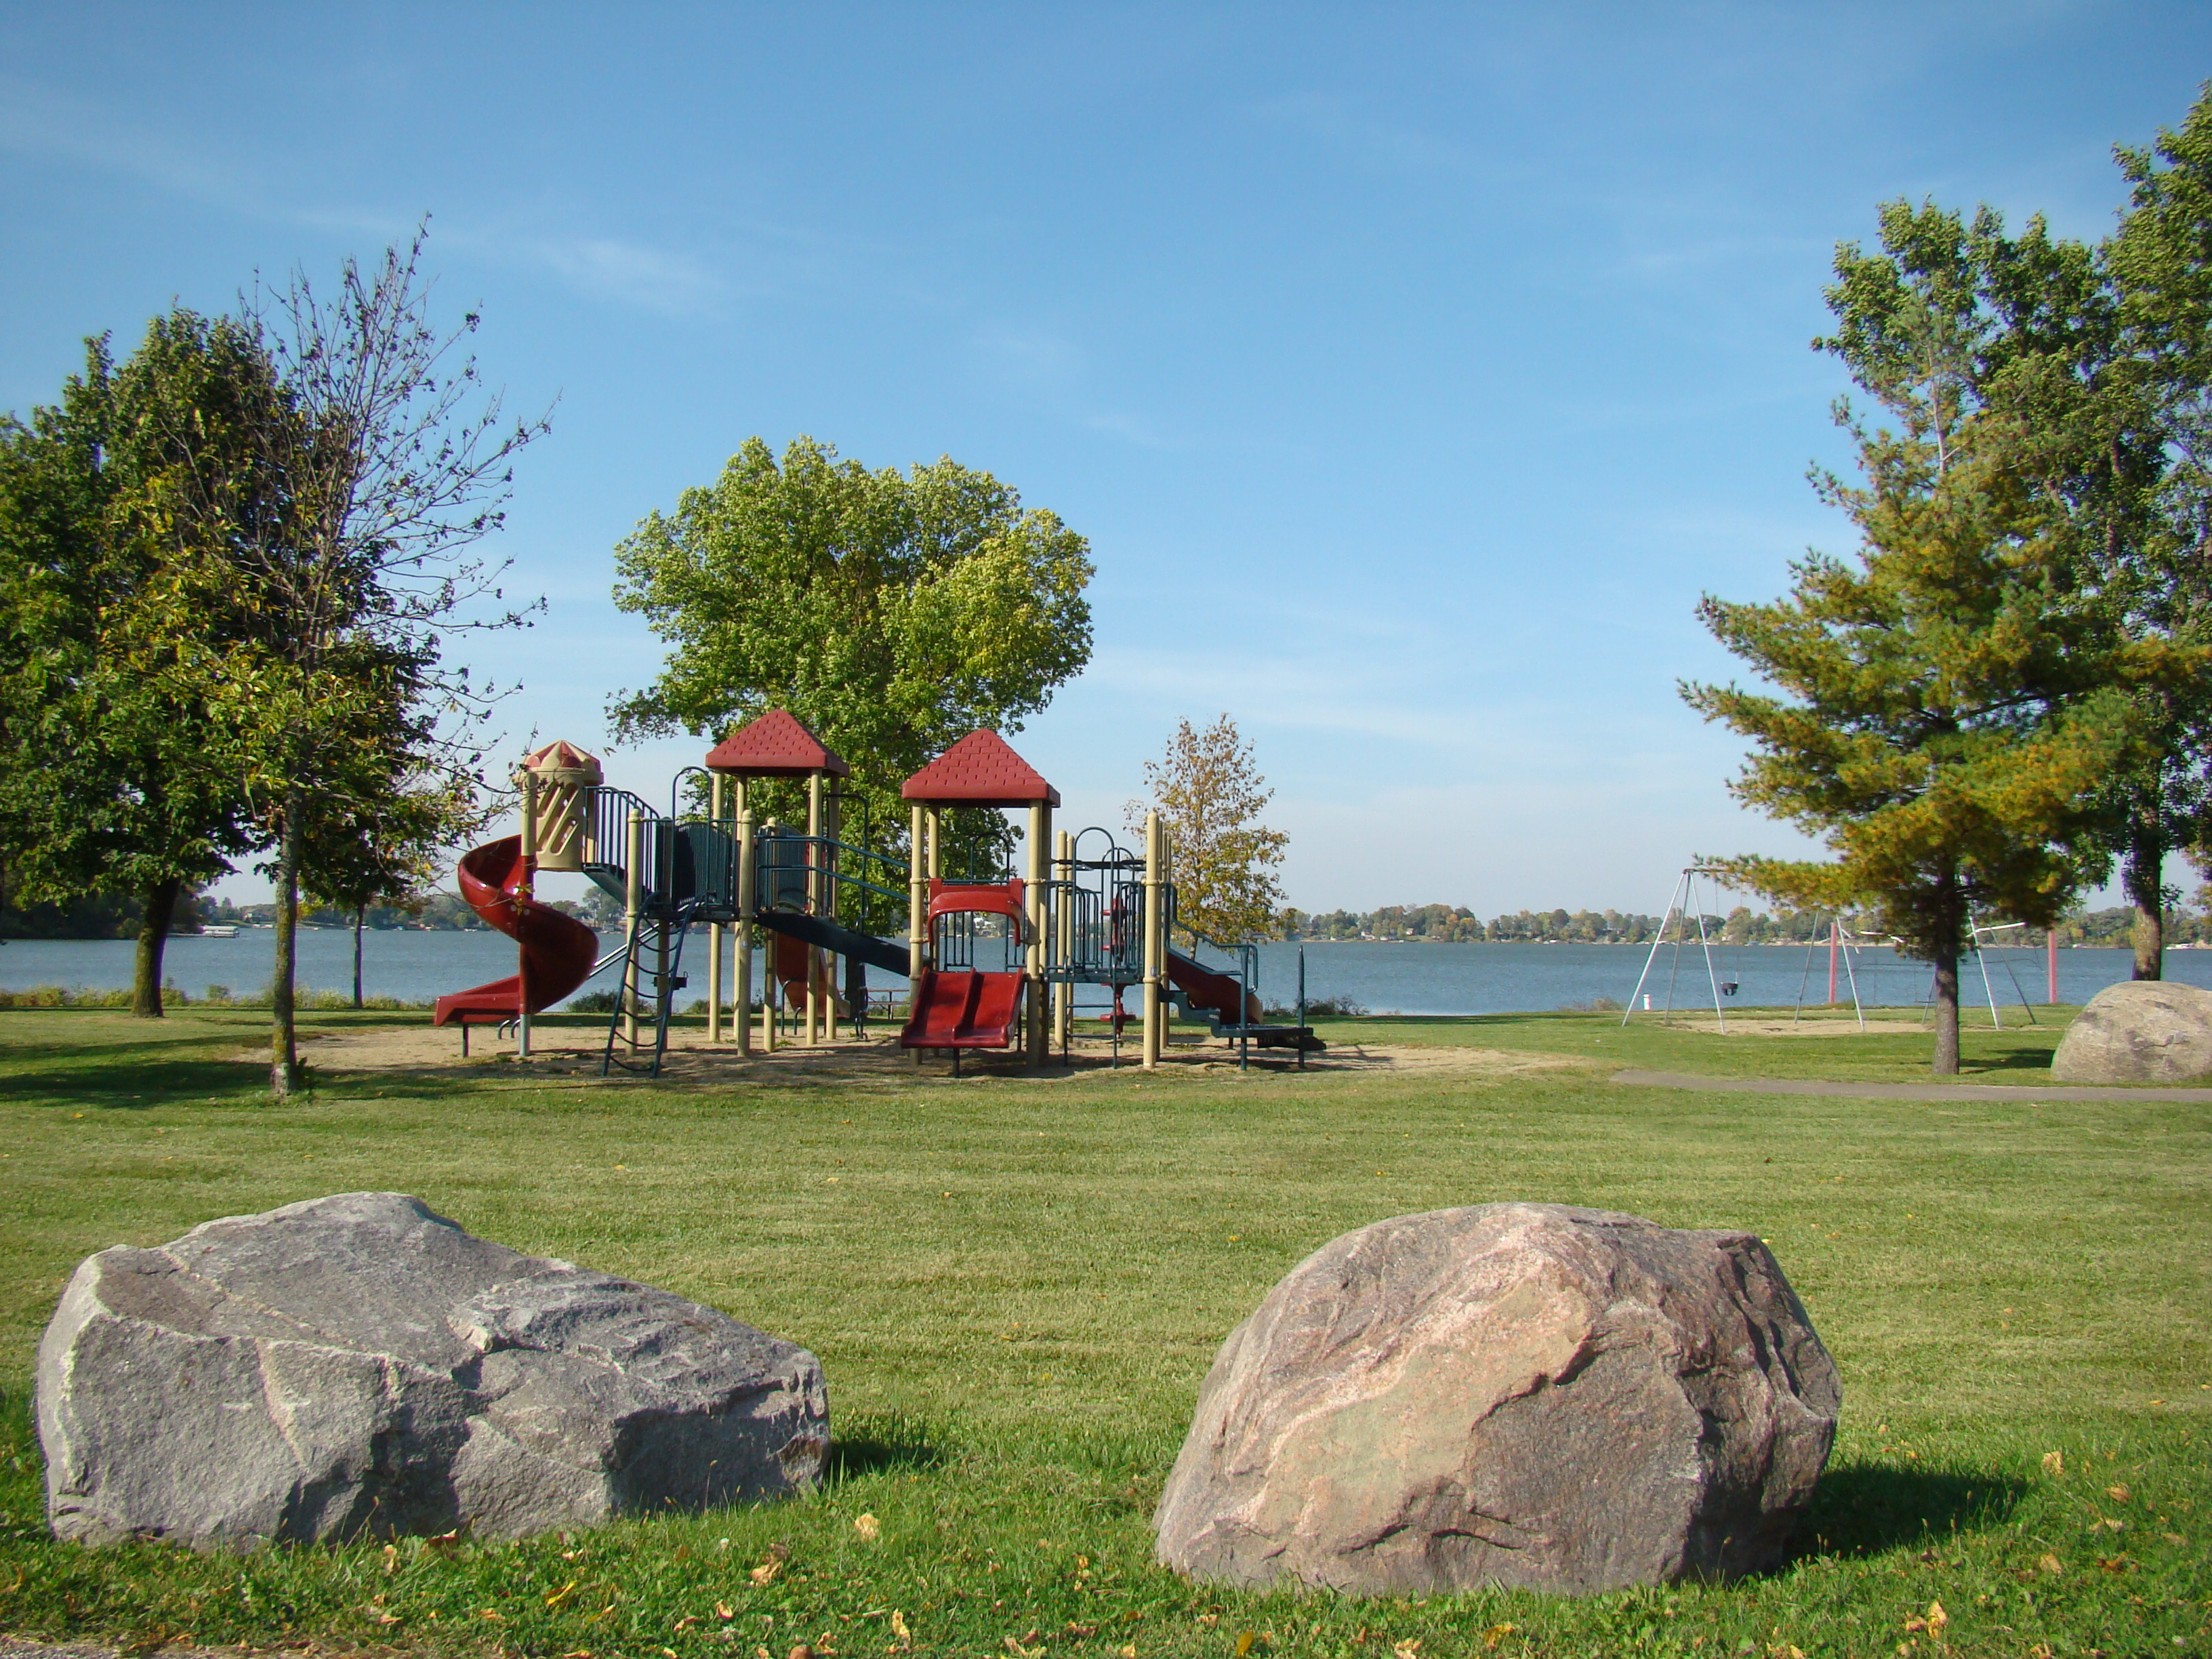 Playground equipment at Duck Lake park.